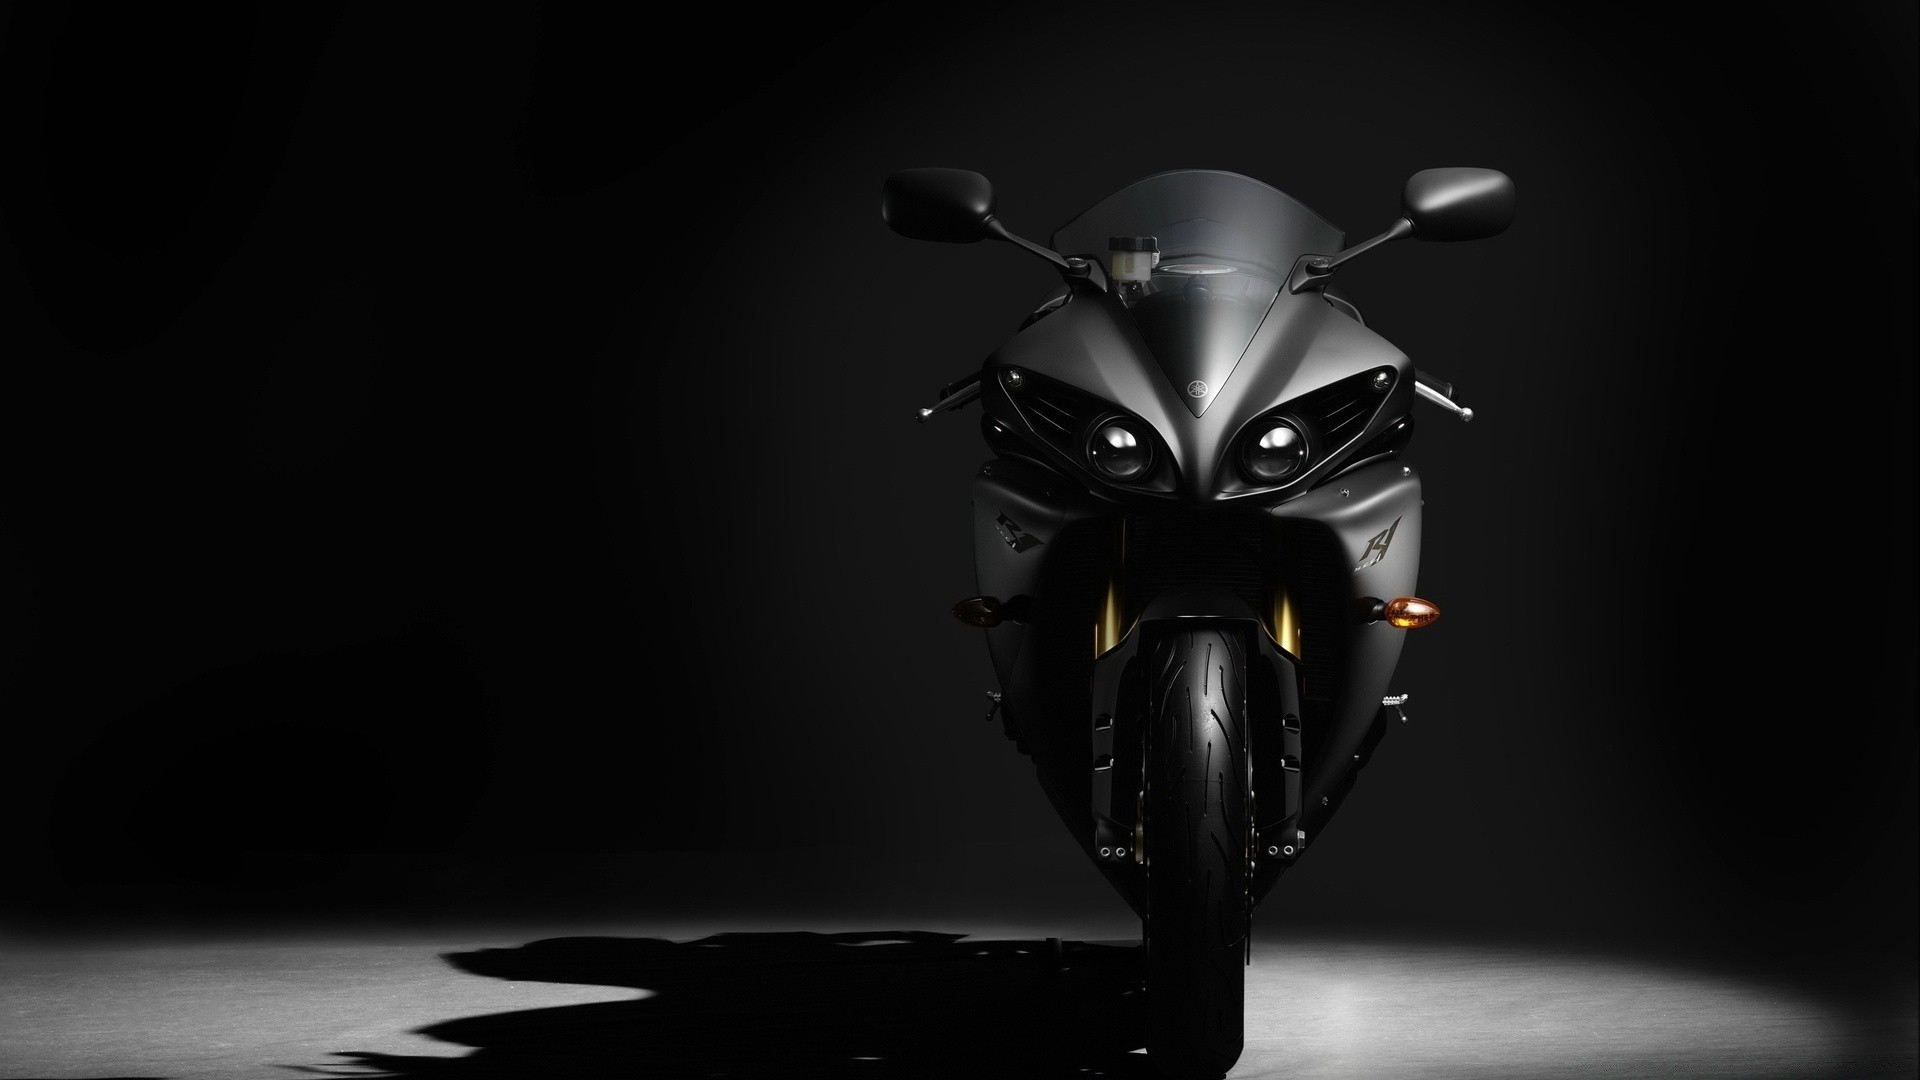 Motorcycle Wallpaper for pc